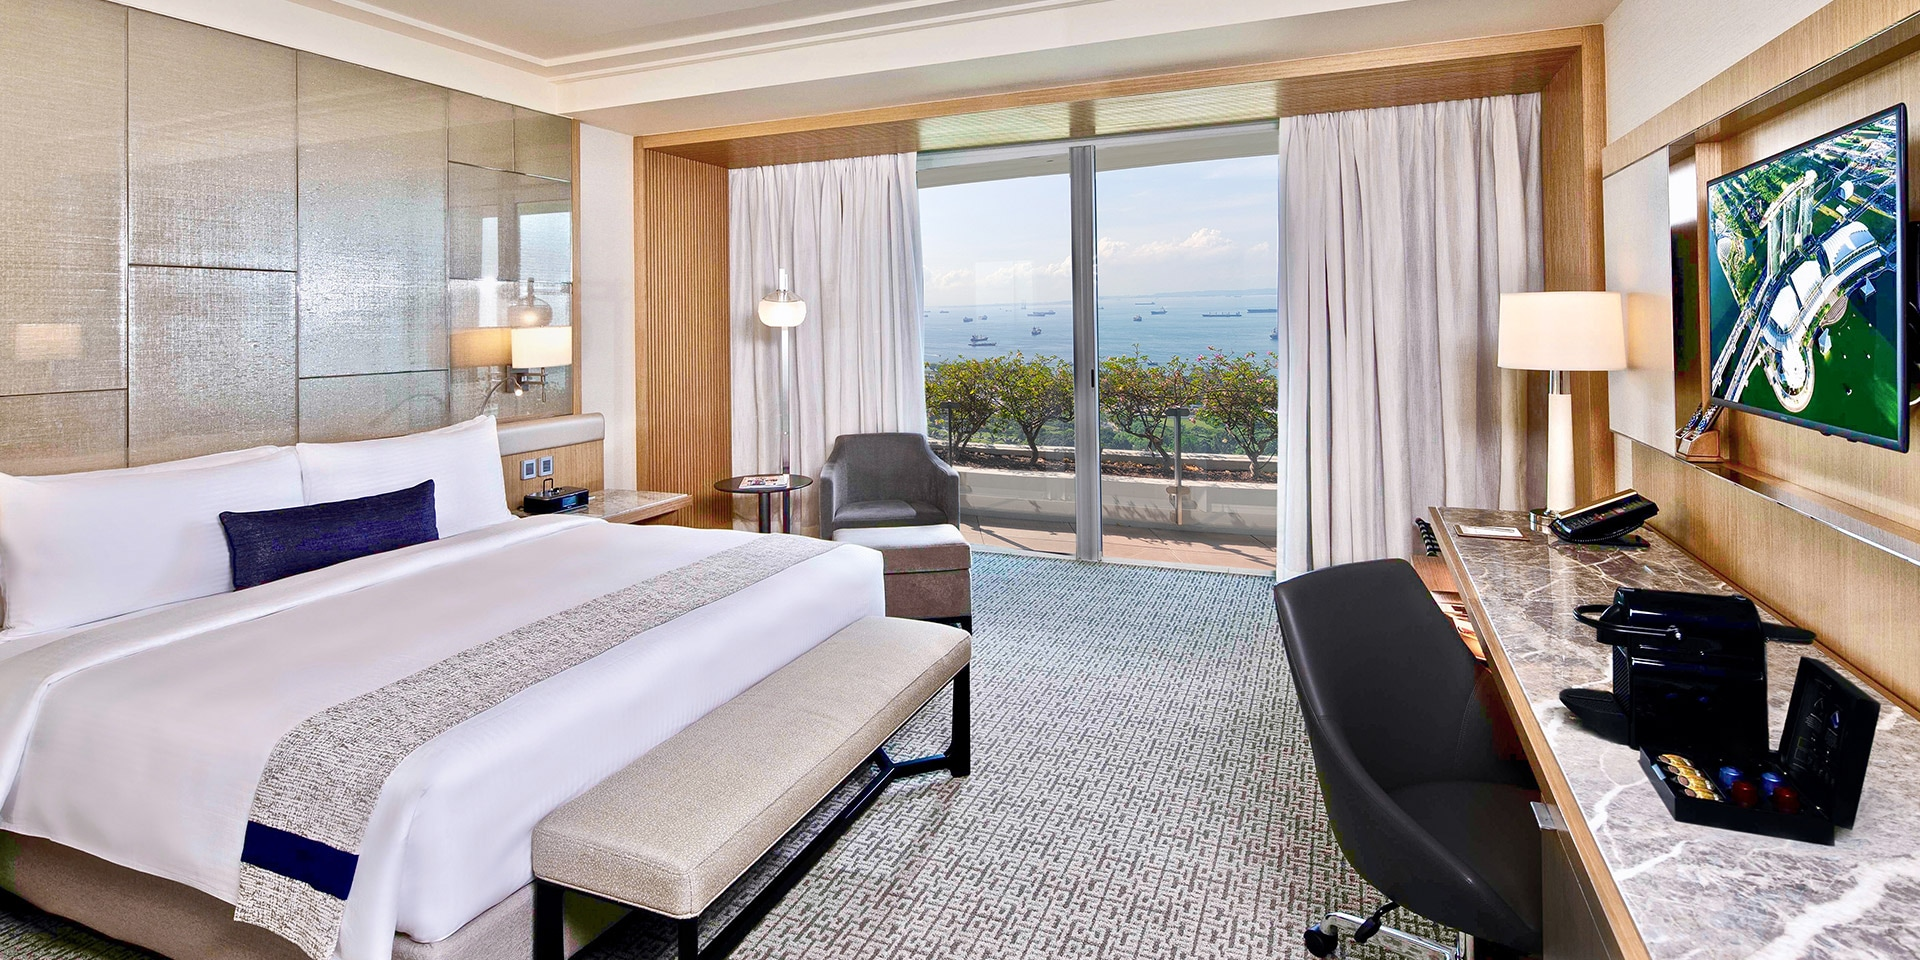 Club Room In Marina Bay Sands Singapore Hotel Hair Dryer Wiring Diagram At With King Bed And City View